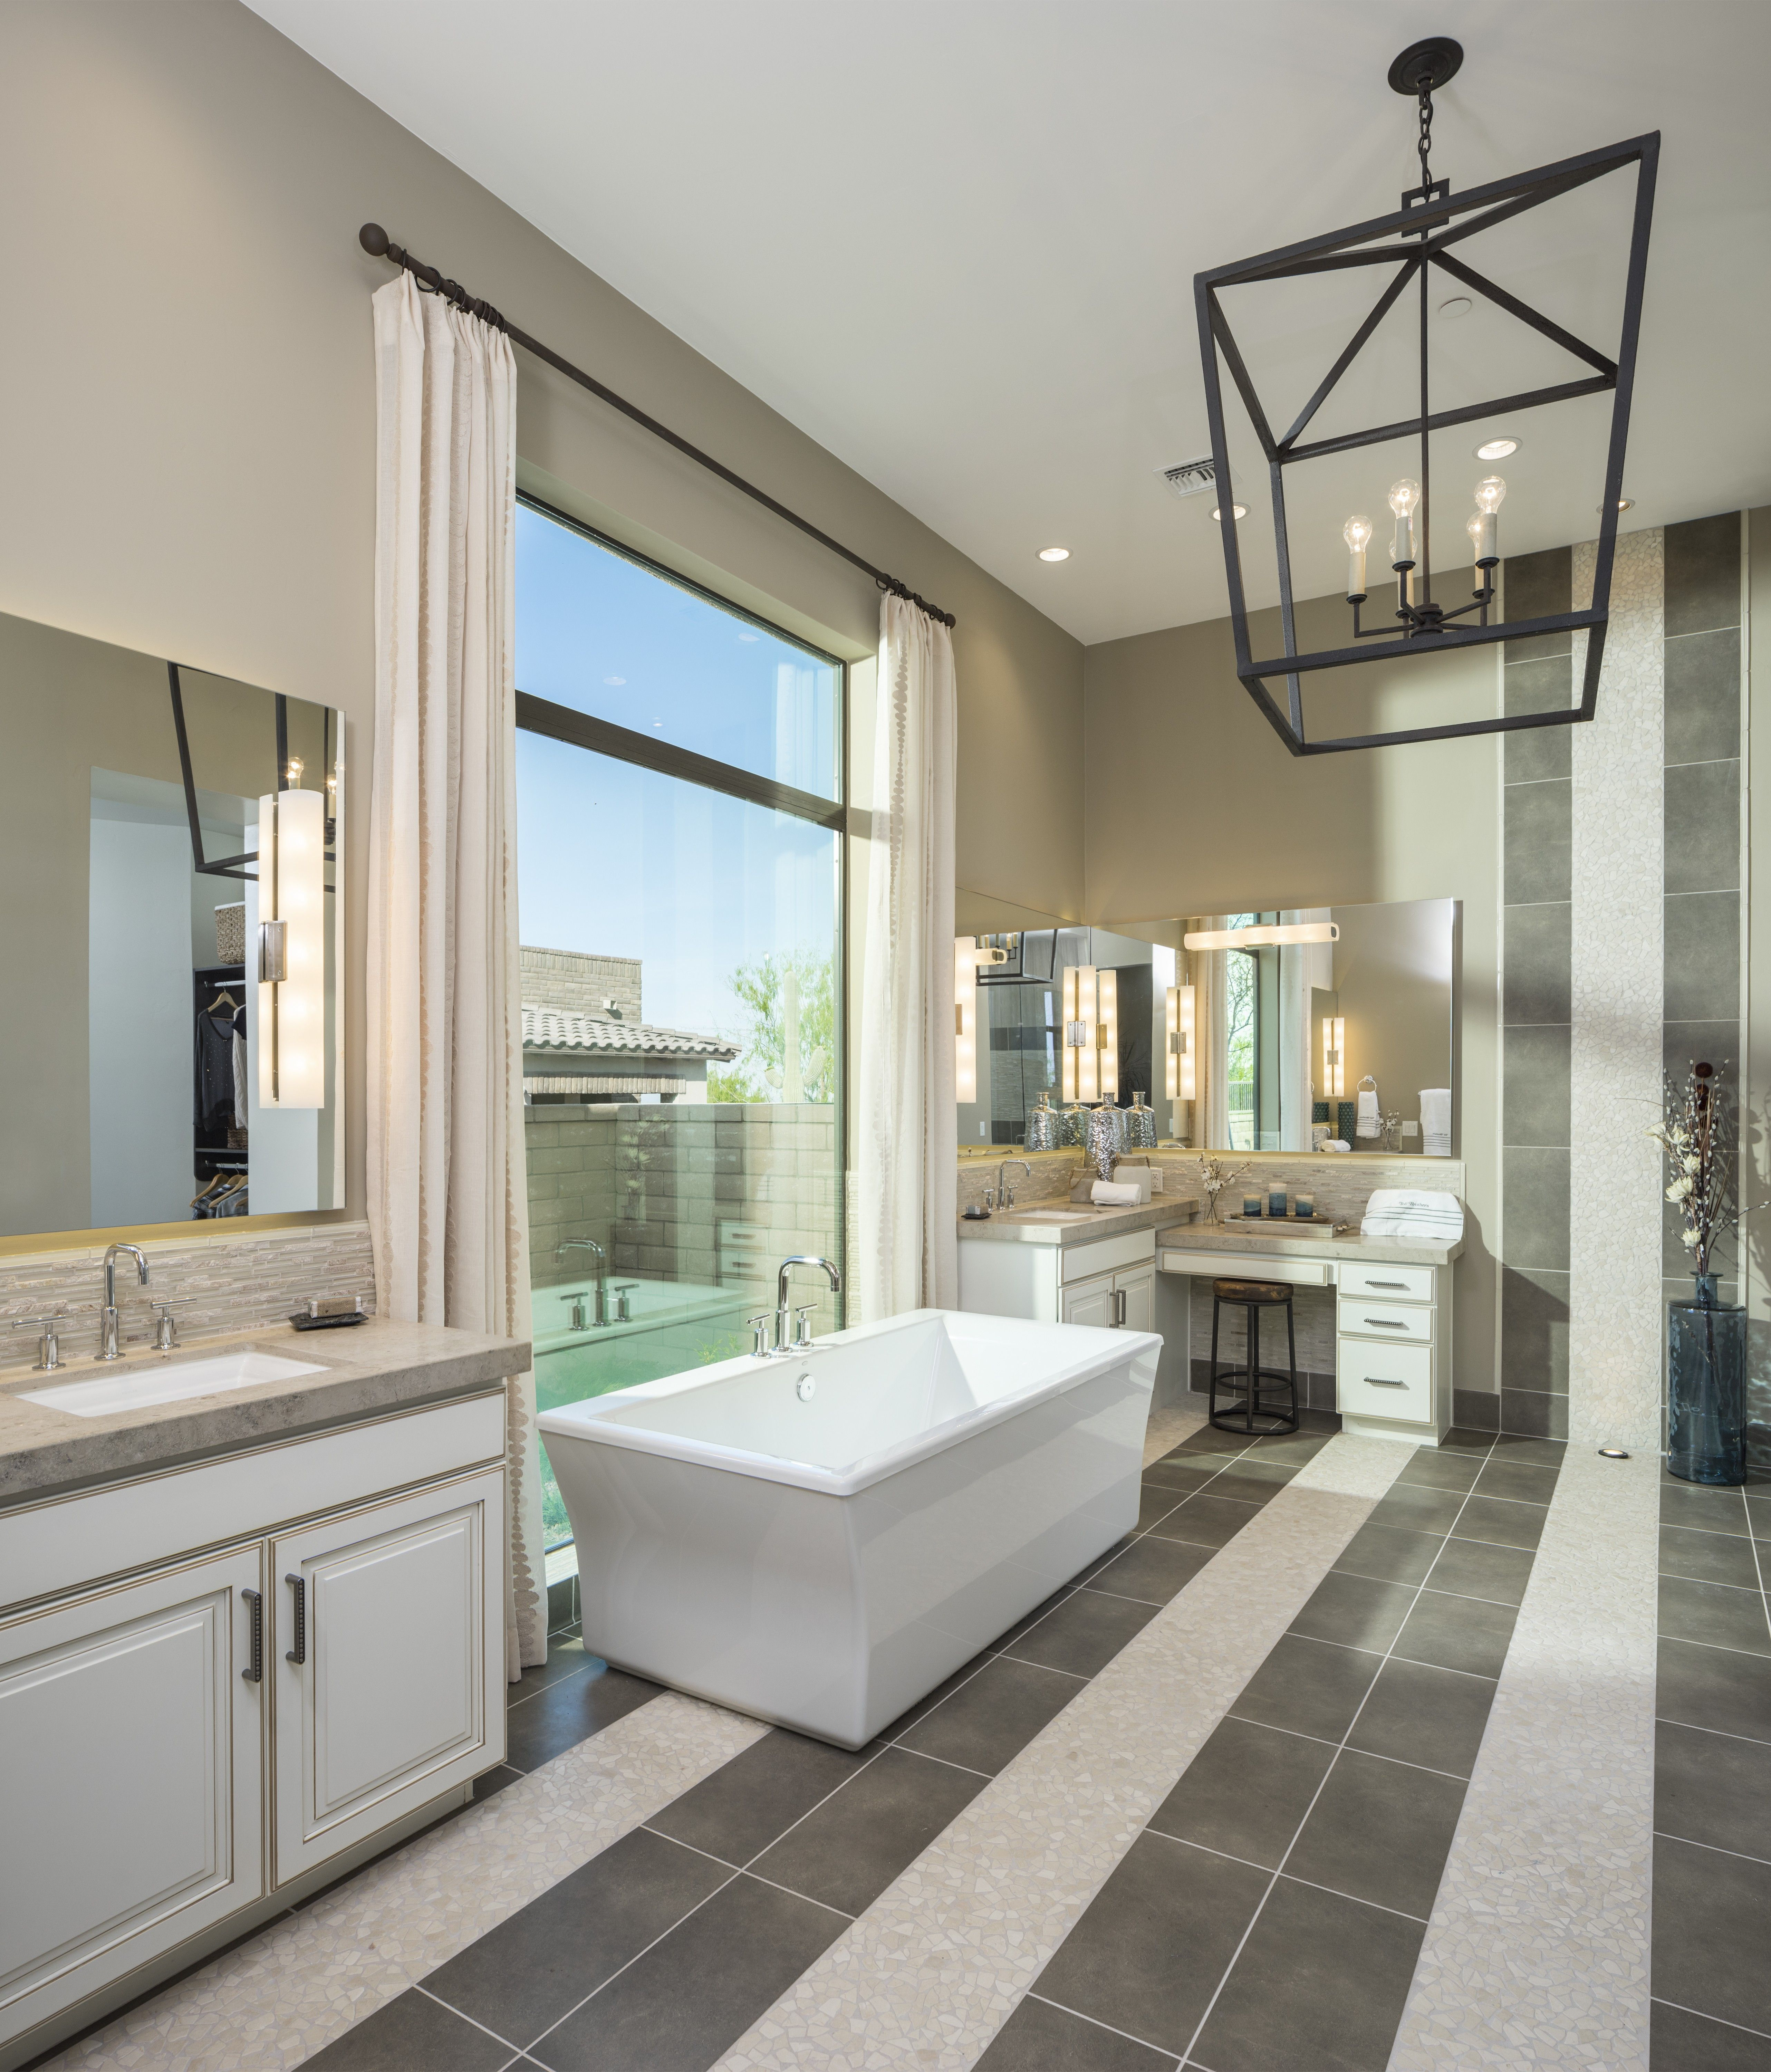 25 Best Ideas About Toll Brothers On Pinterest: Toll Brothers At Los Saguaros, AZ